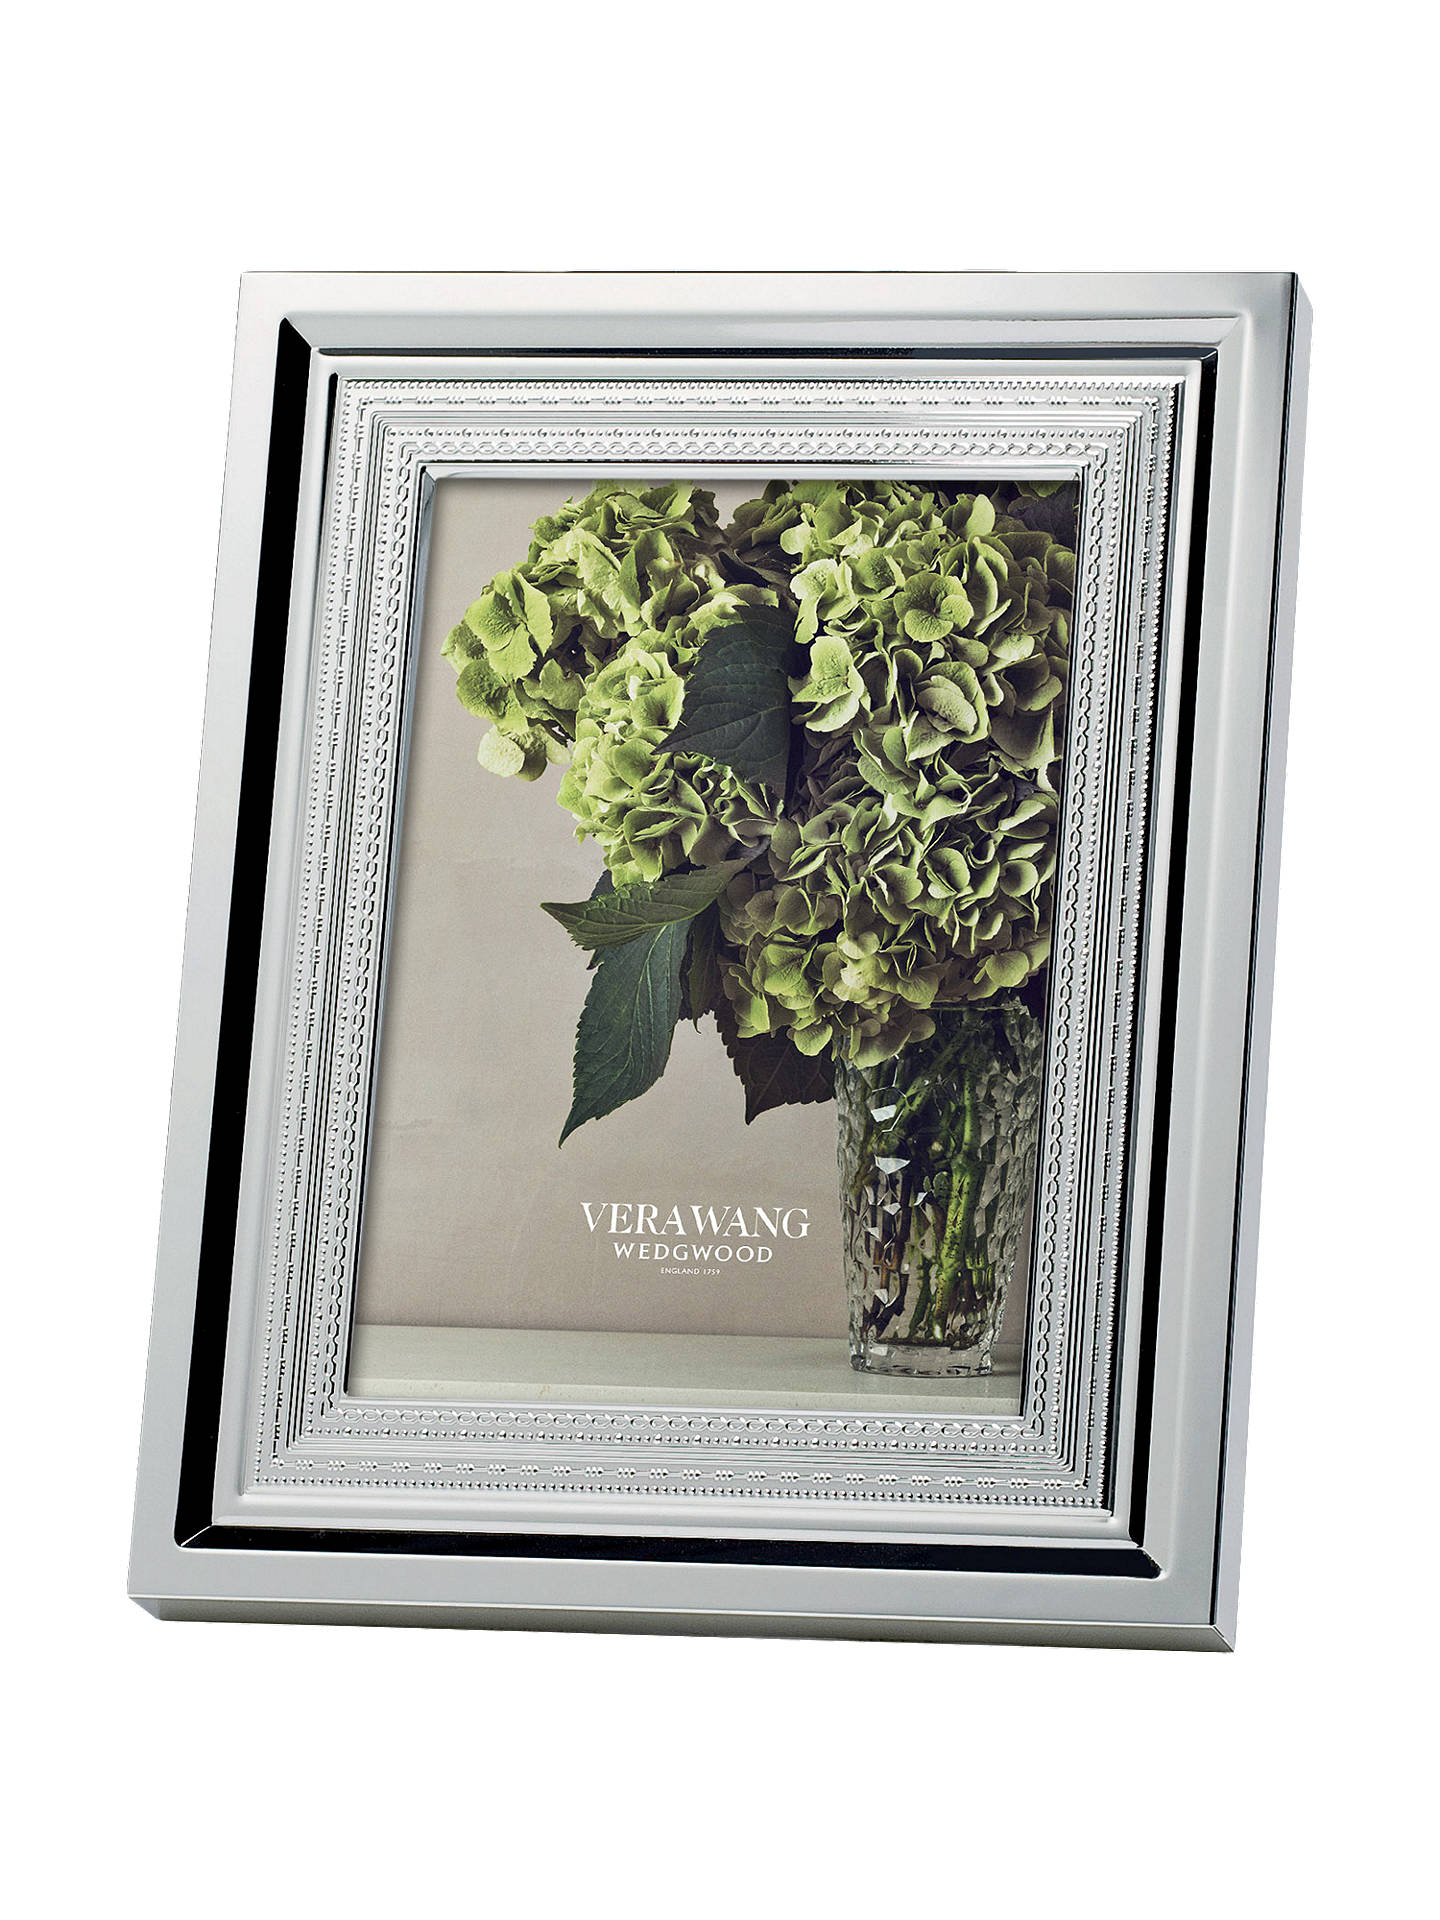 "Buy Vera Wang With Love Photo Frame, Silver, 5 x 7"" (13 x 18cm) Online at johnlewis.com"